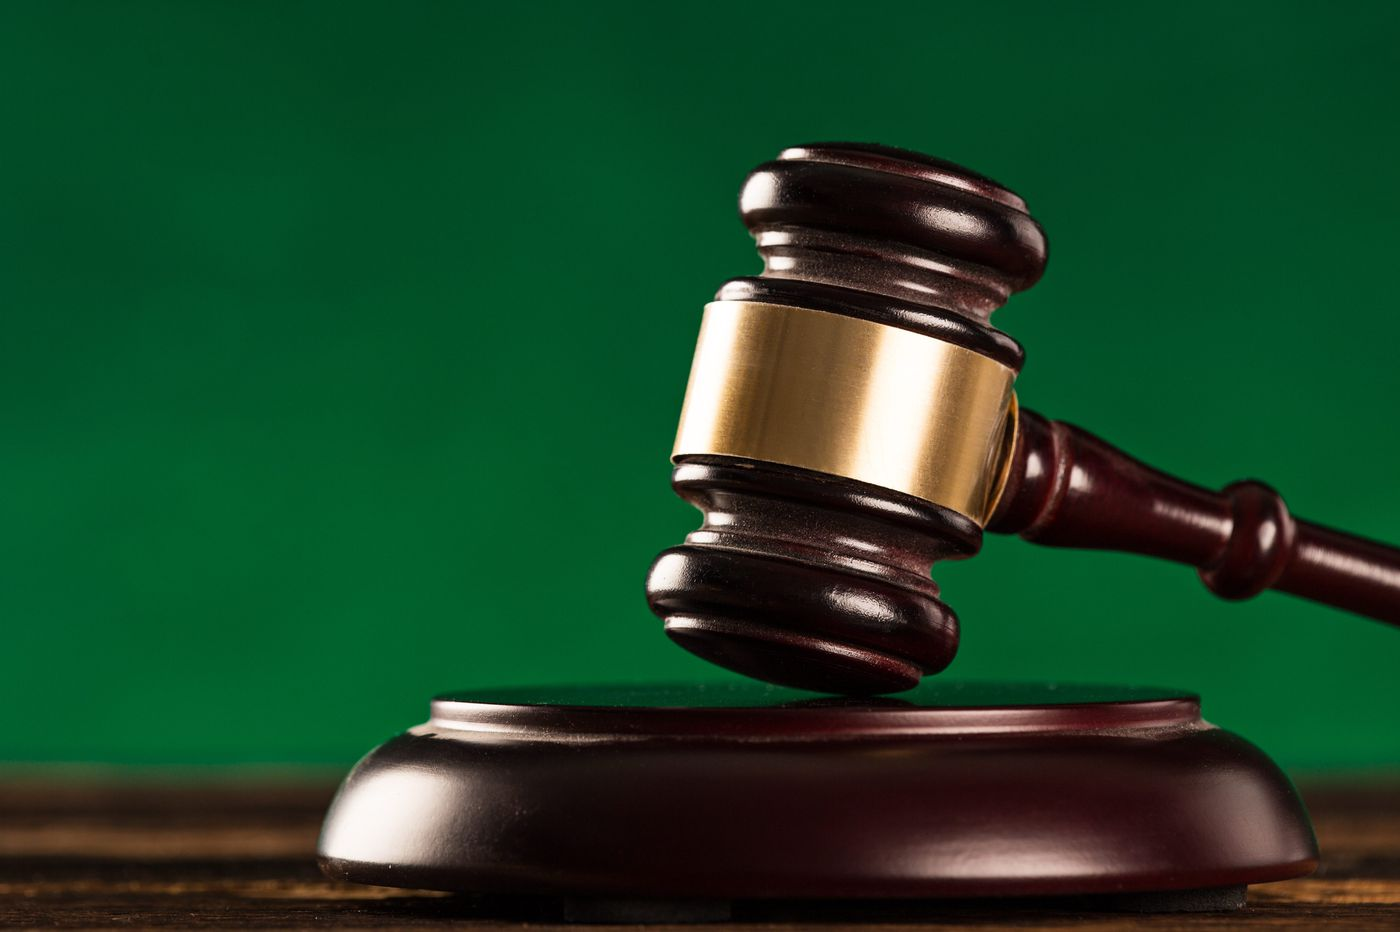 Philly man gets prison for hidden recordings of preteen girls